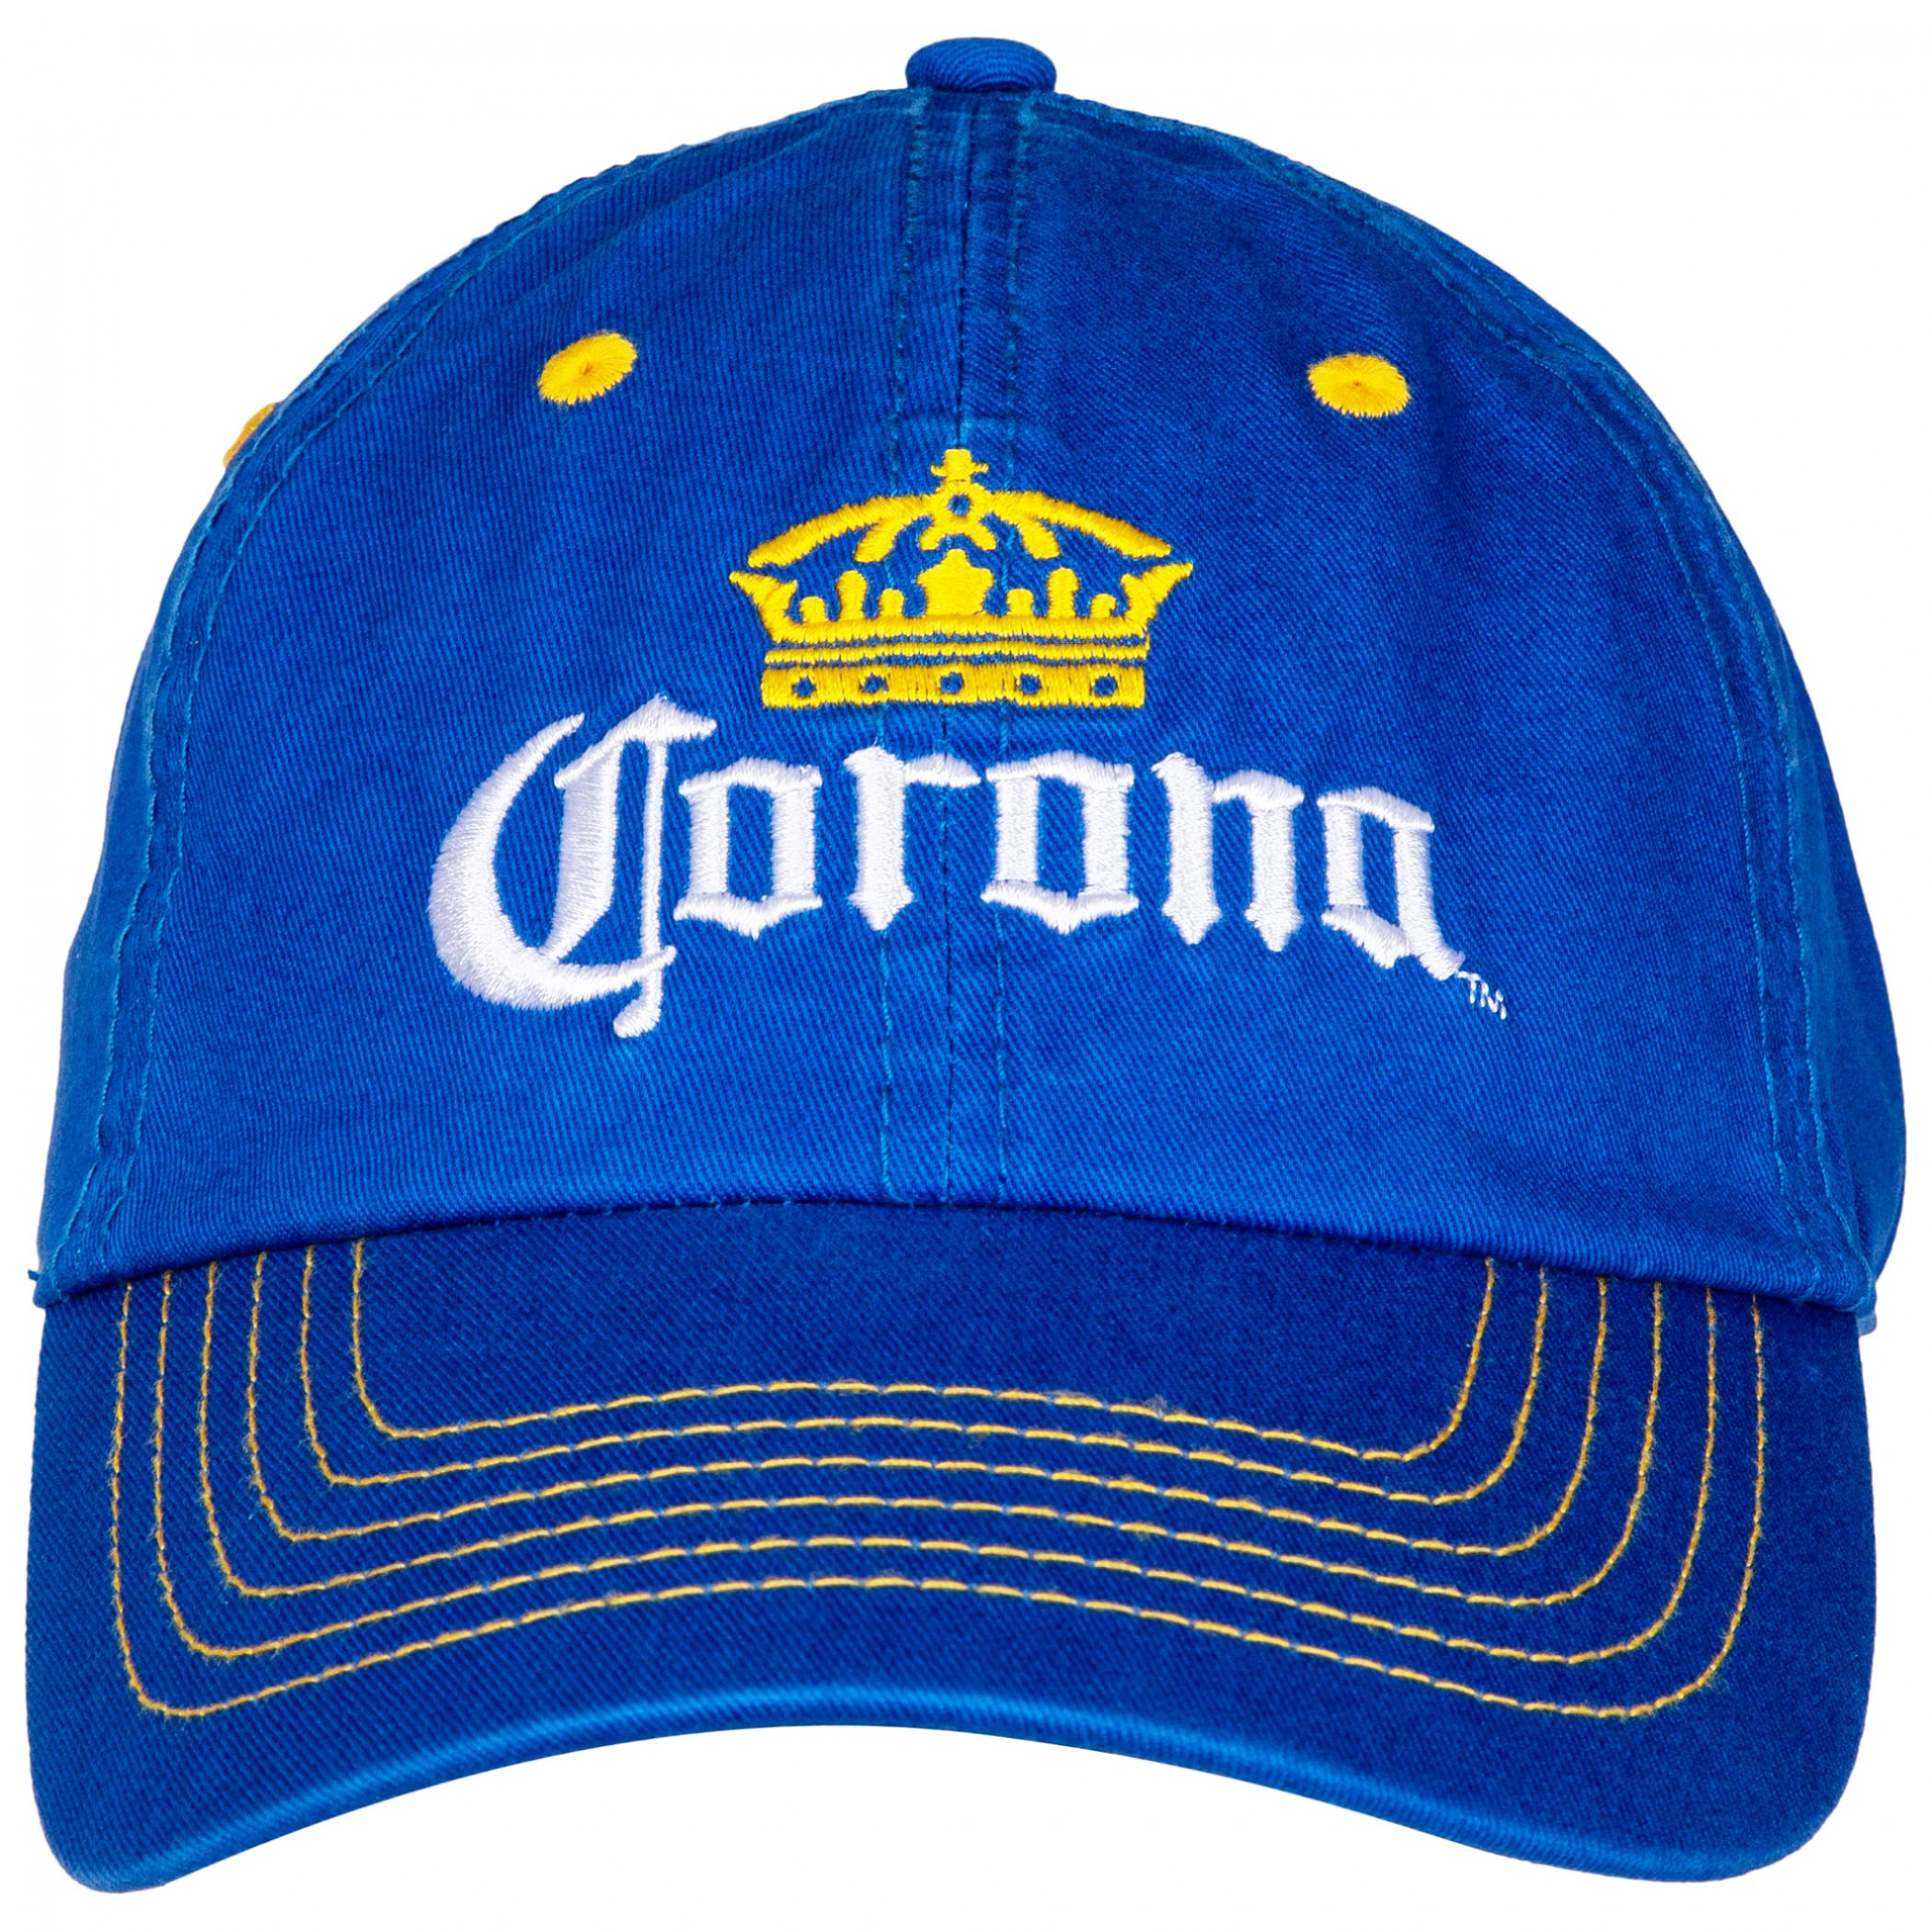 Corona Extra Yellow Stitch Adjustable Strapback Hat